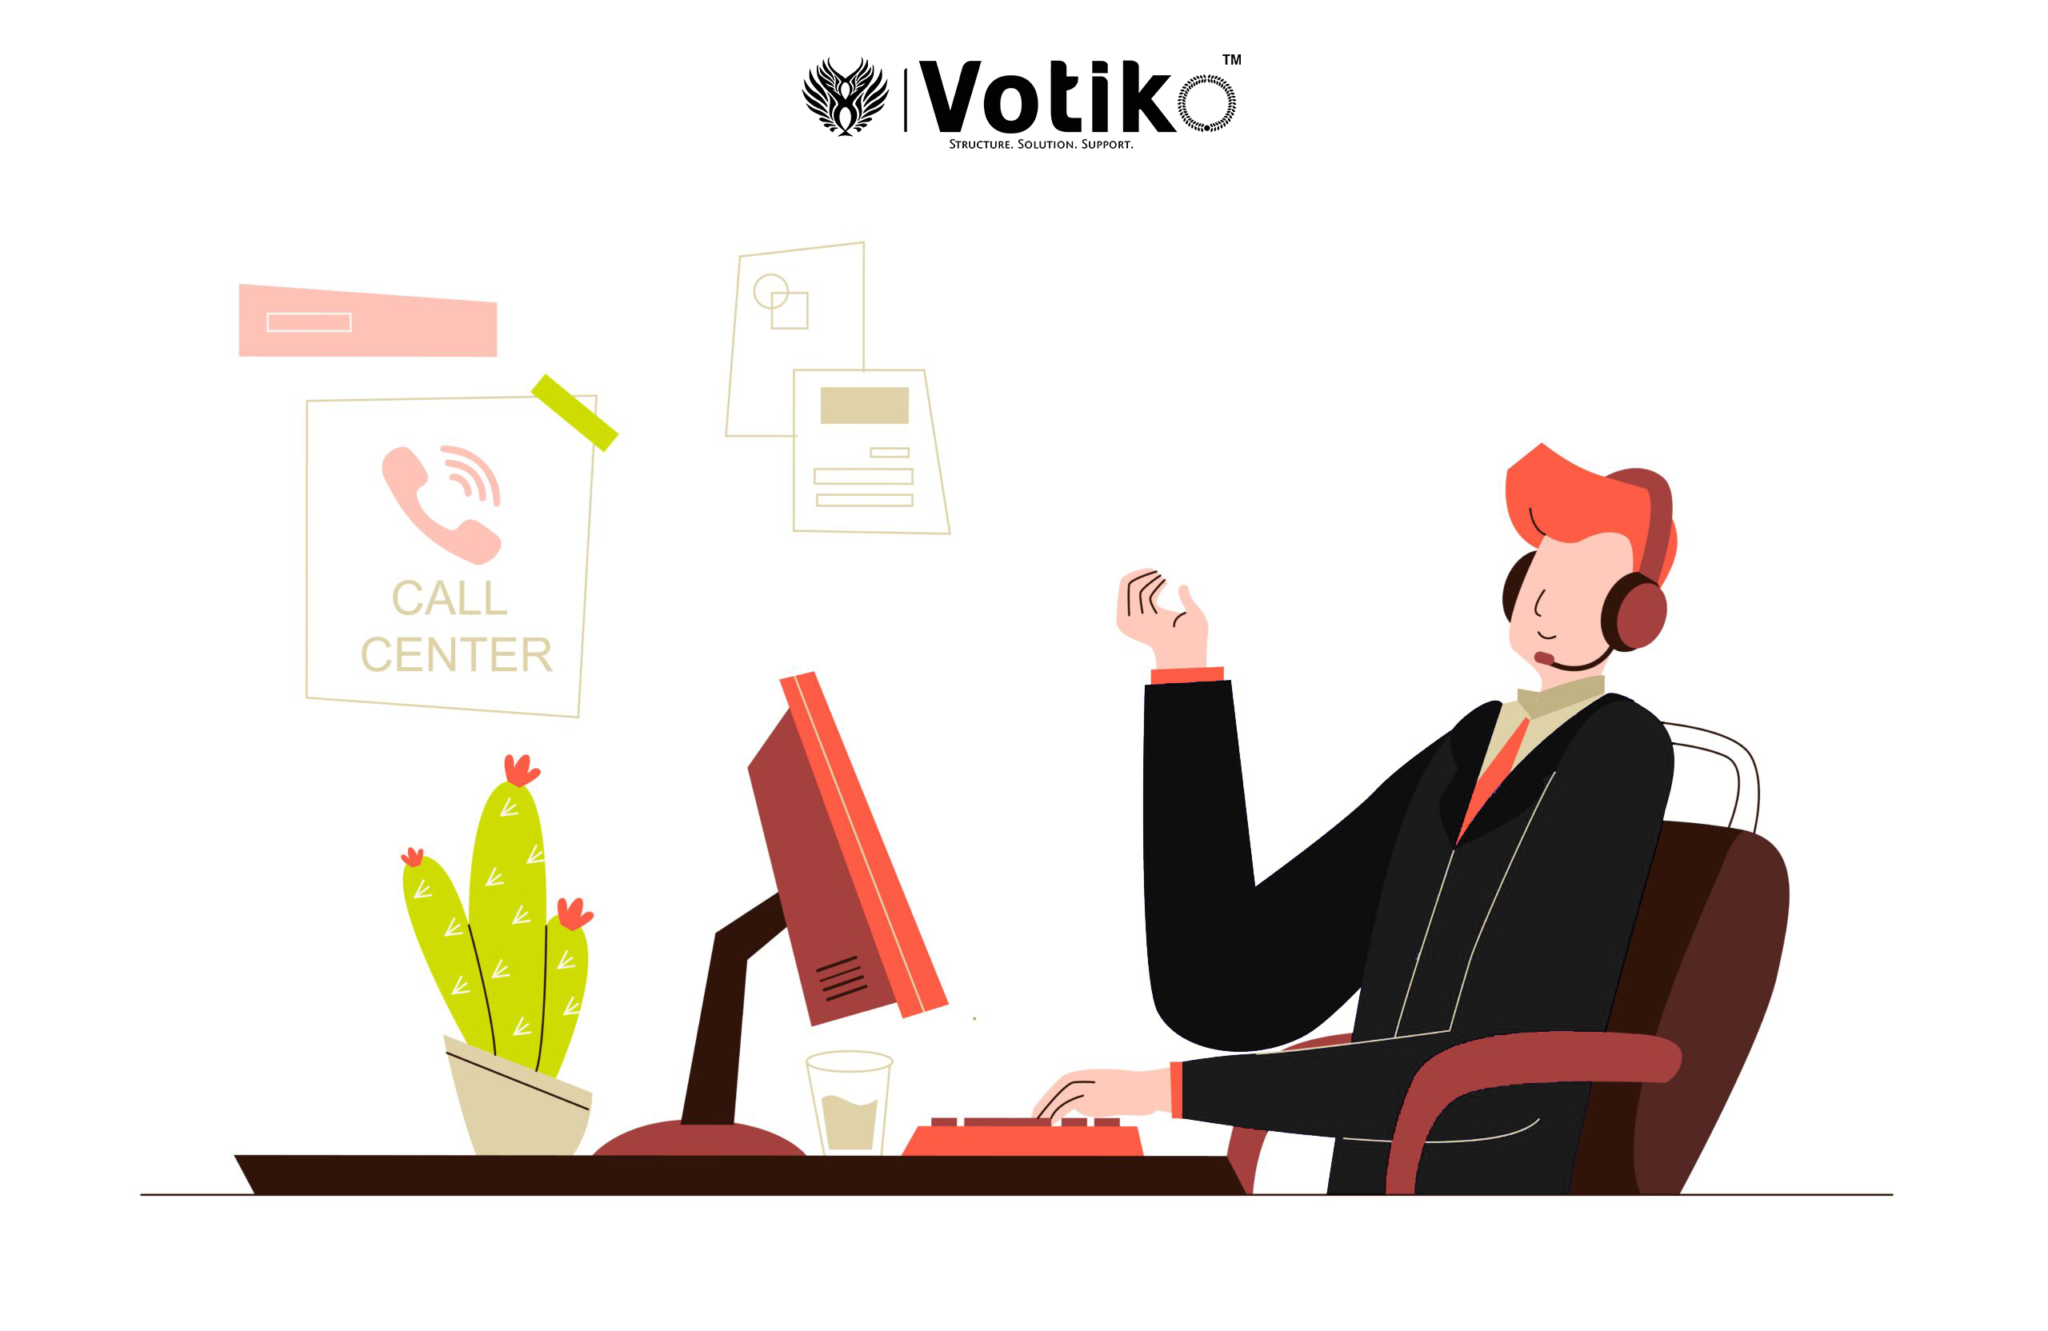 With inbound call center outsourcing, you may turn a cost center into a profit center